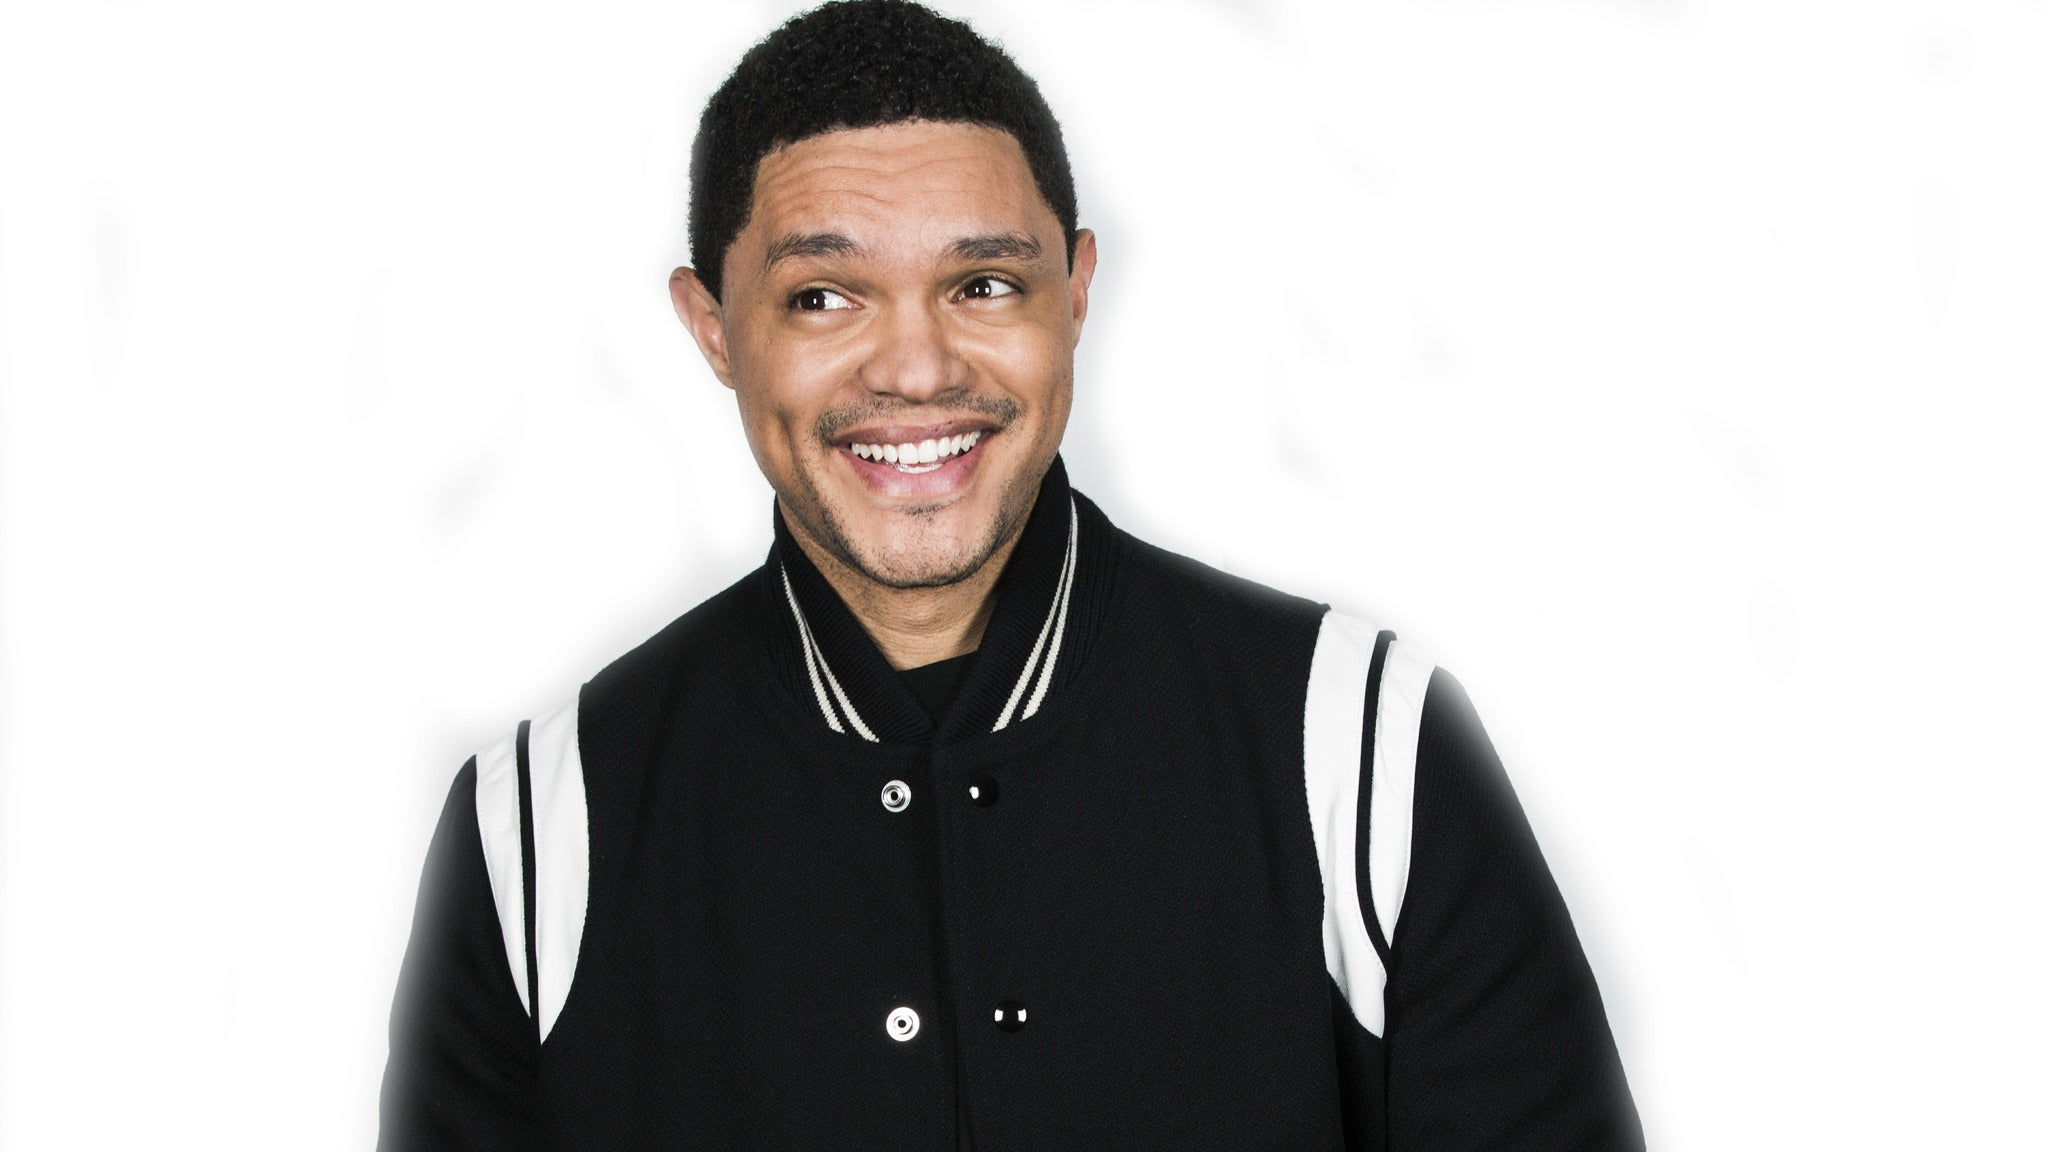 Trevor Noah at Adams Event Center - Missoula, MT 59812